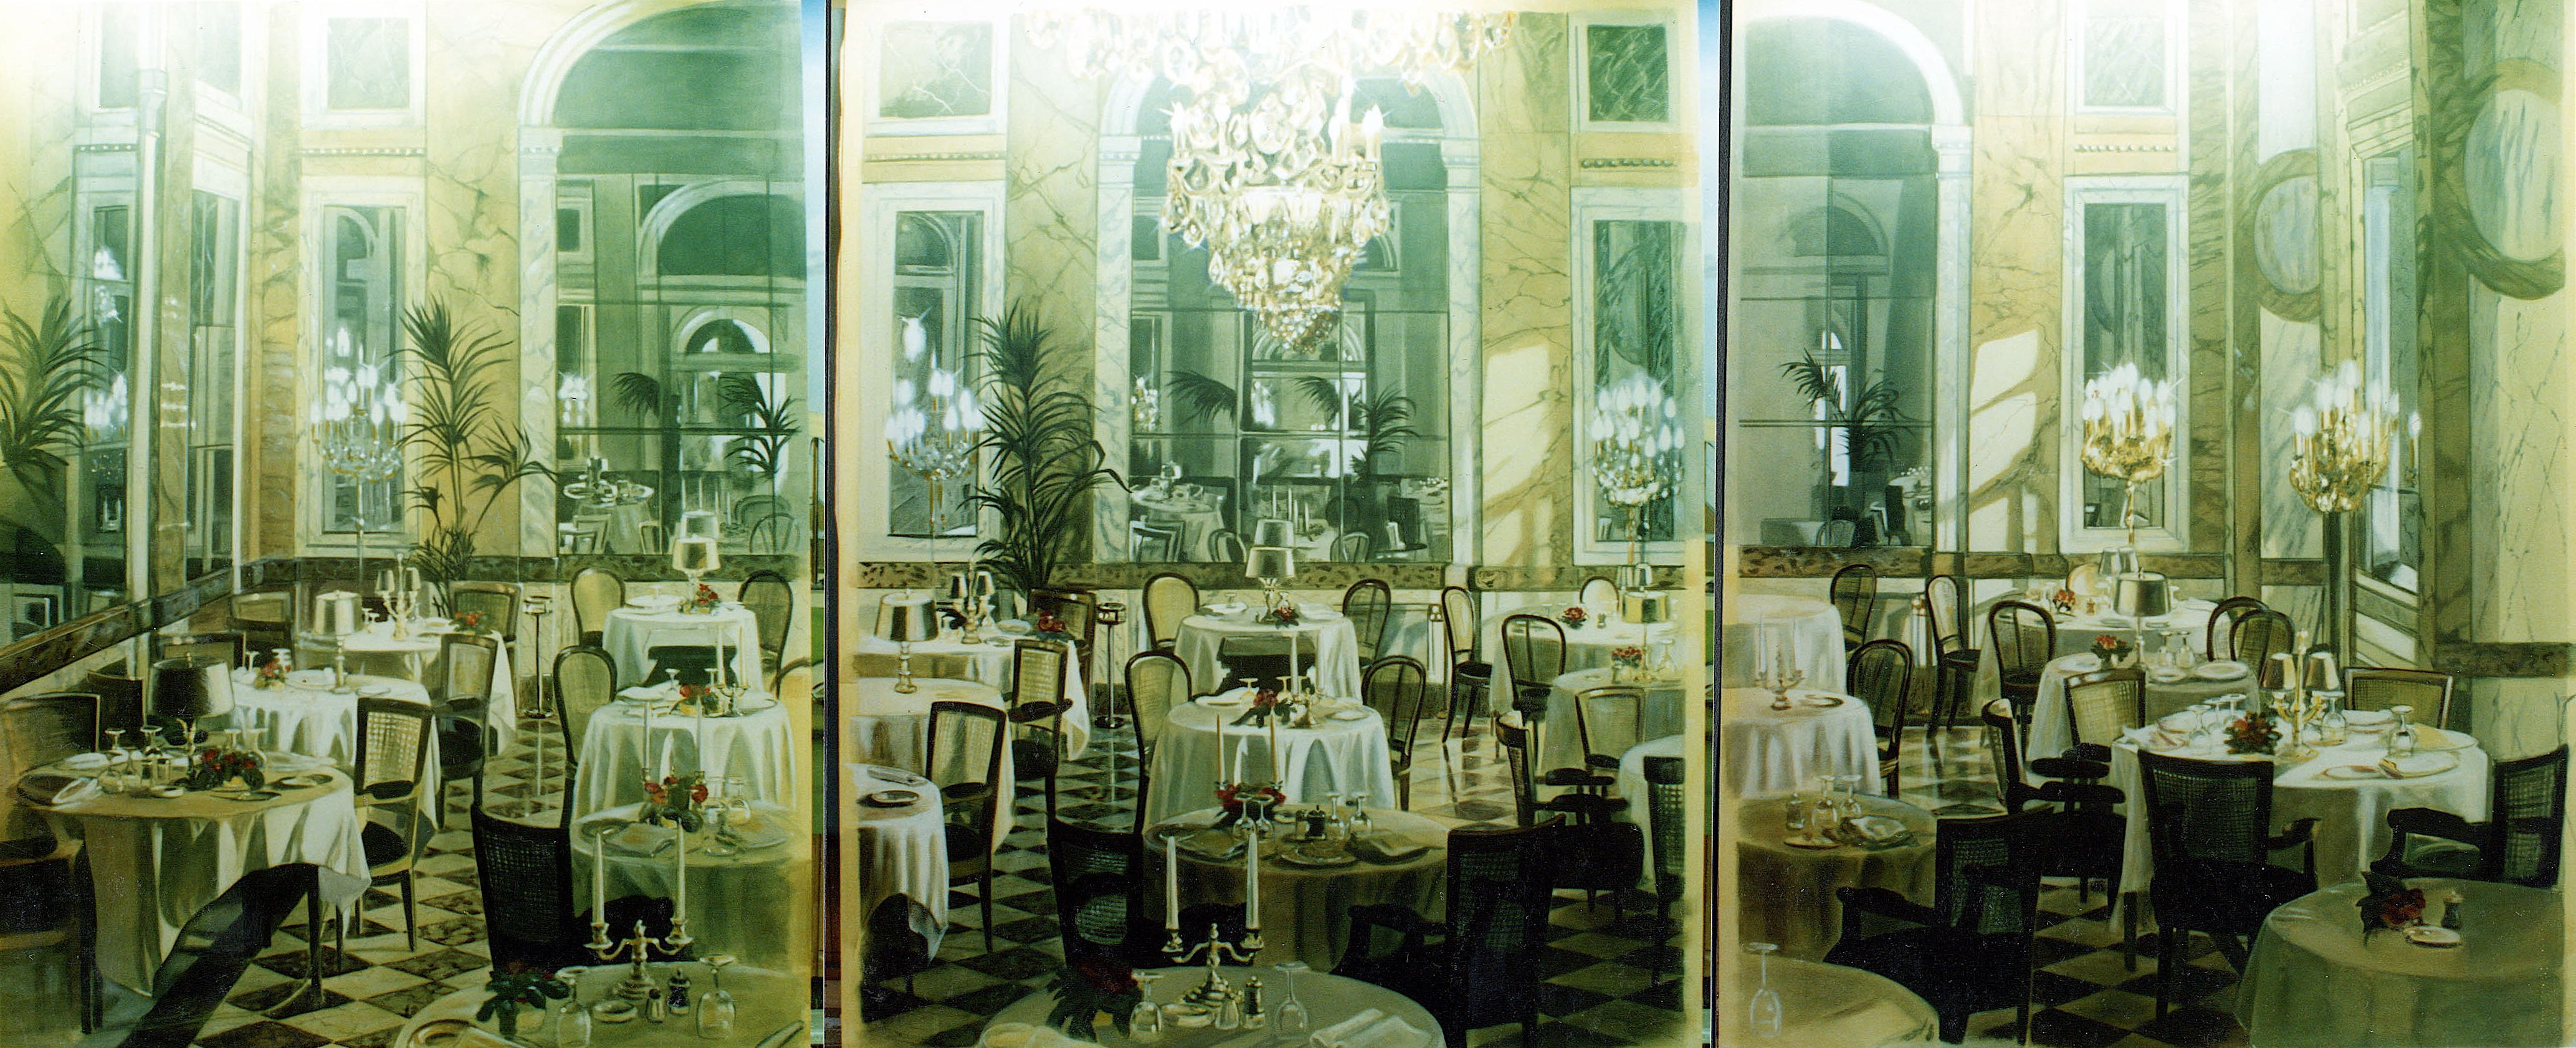 Gemälde Hotel Ritz Paris